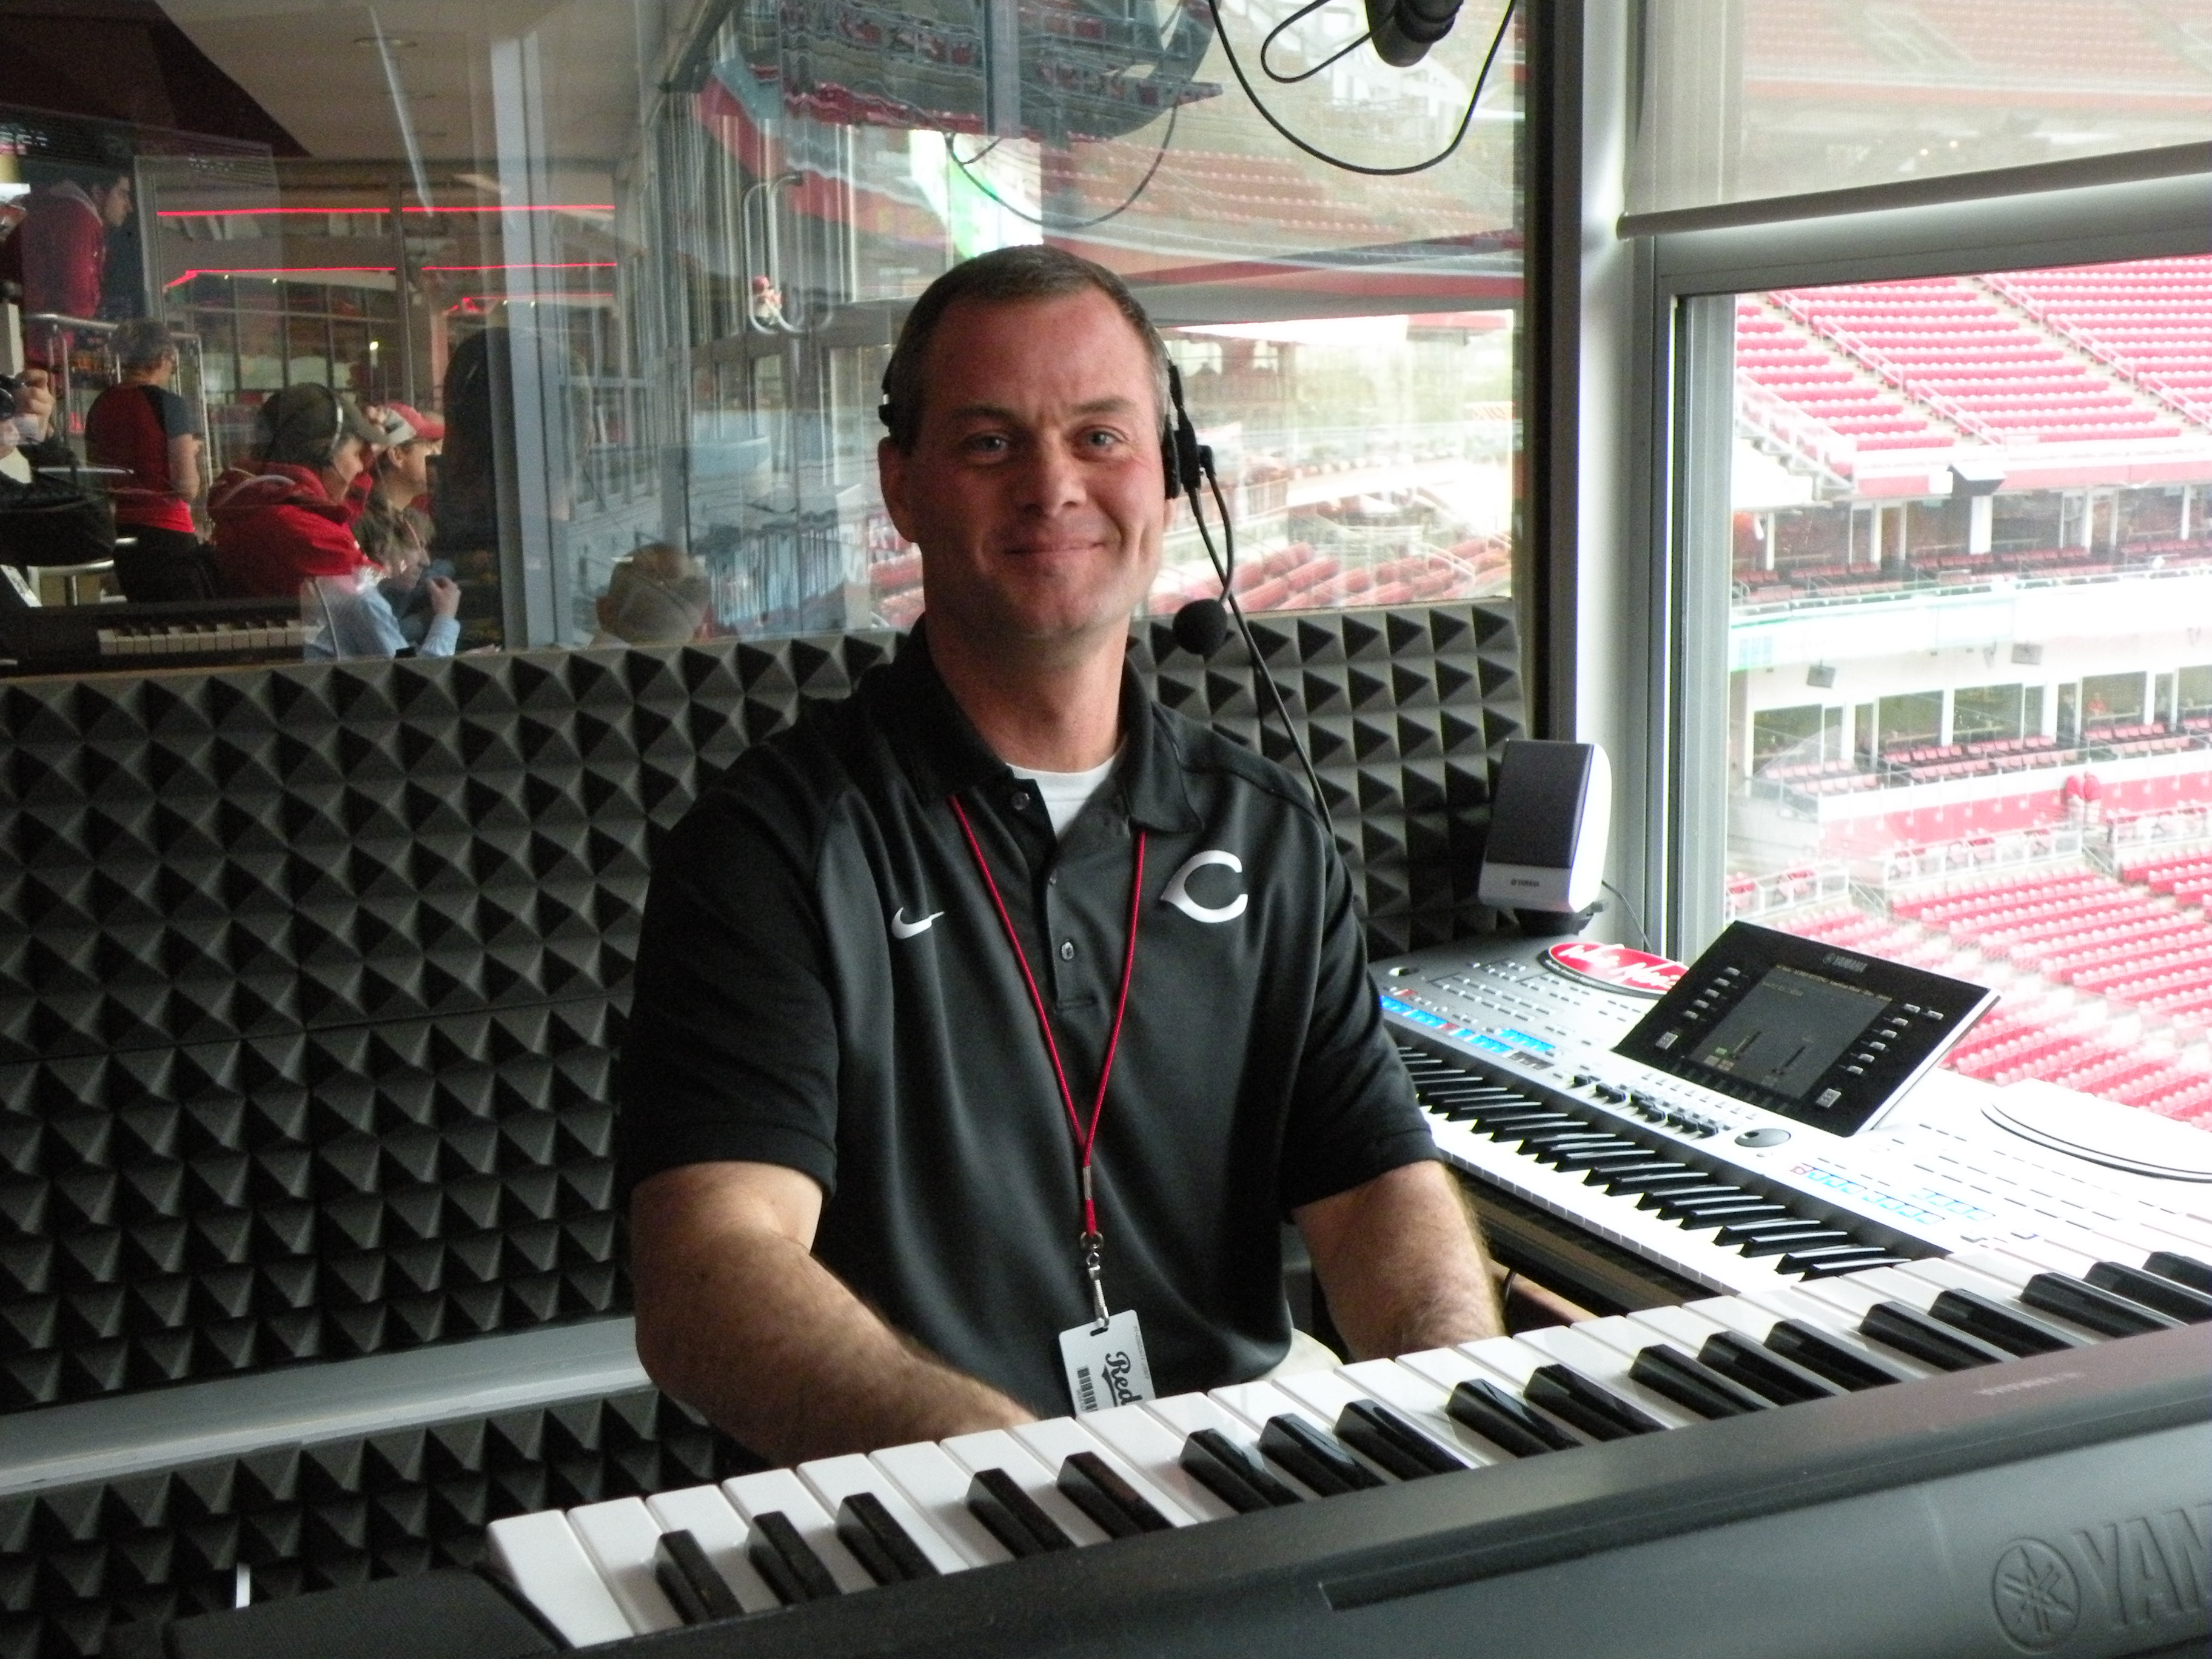 There's a rain delay, crowds are getting restless?  No problem, Reds organist John Schutte is there to save the day! You can find him on Twitter @TheRedKeys.